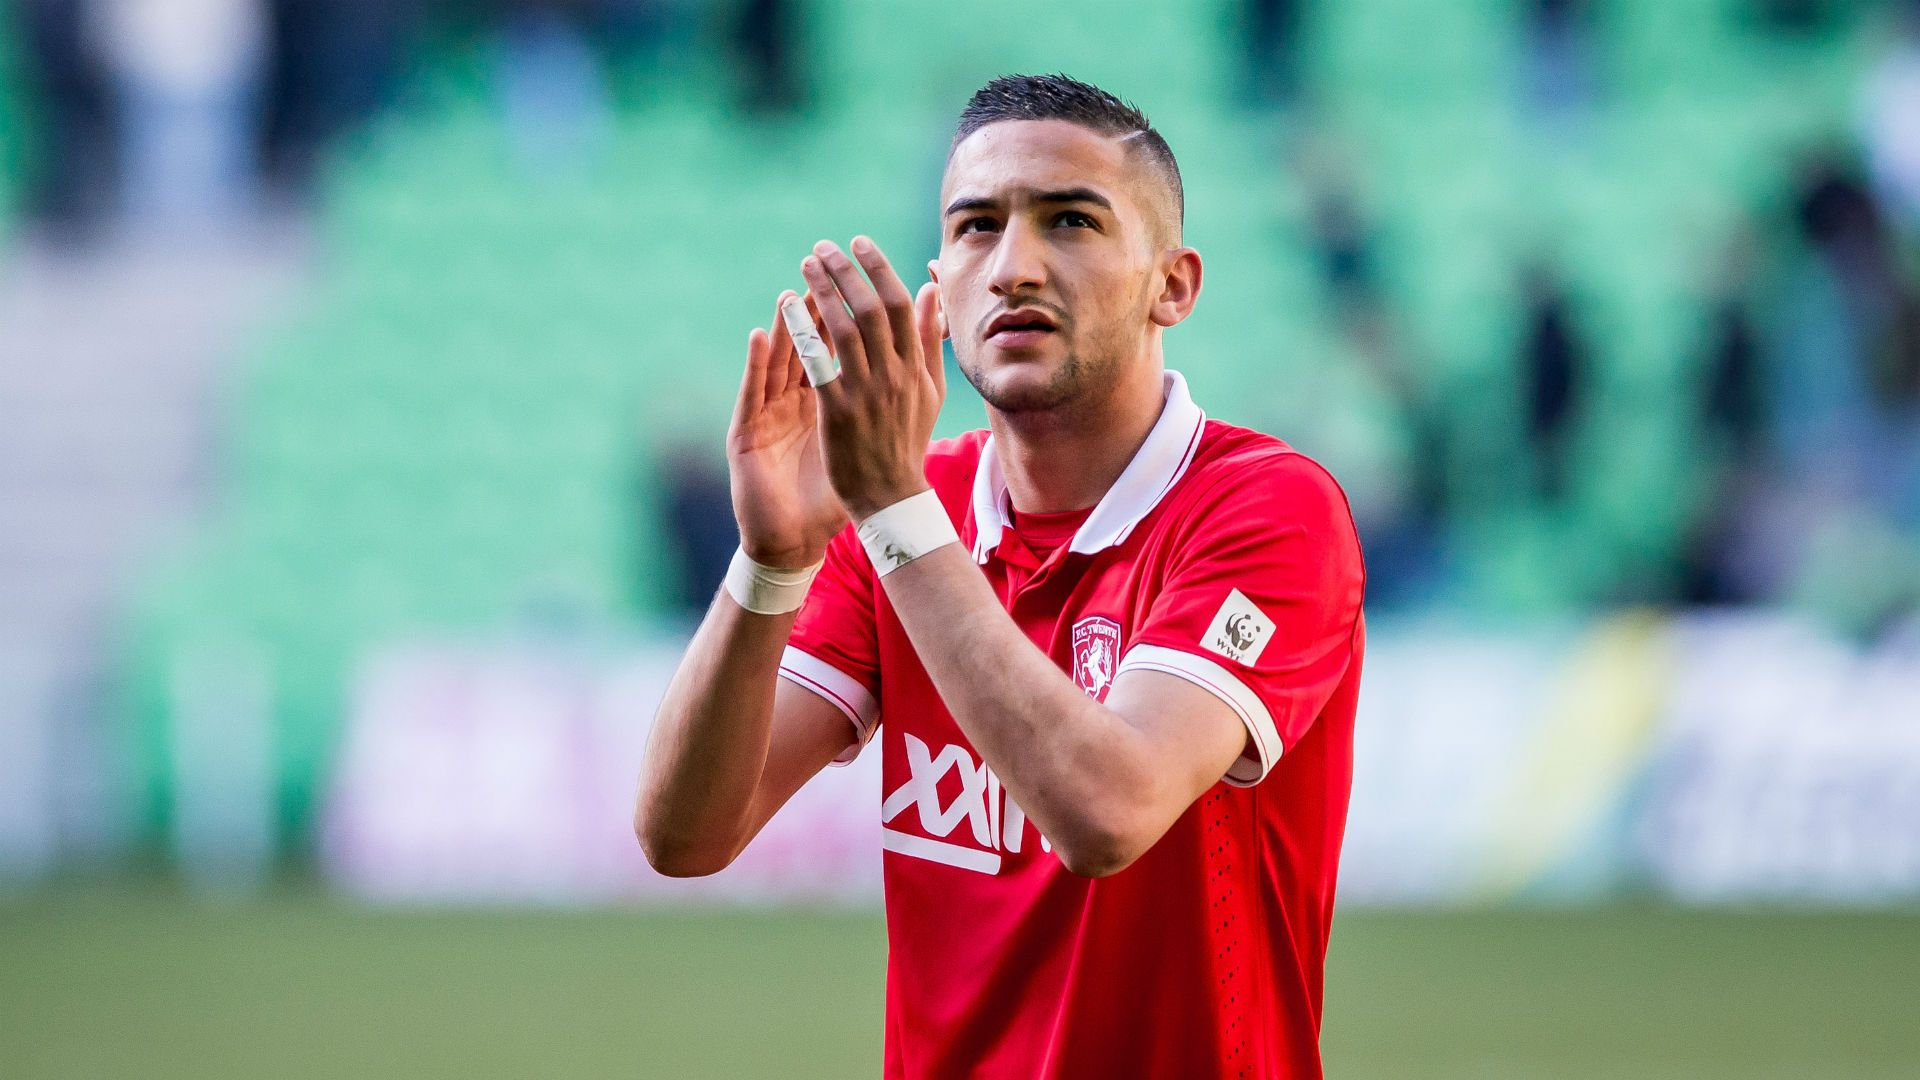 Hakim Ziyech earned a  million dollar salary - leaving the net worth at 7 million in 2018